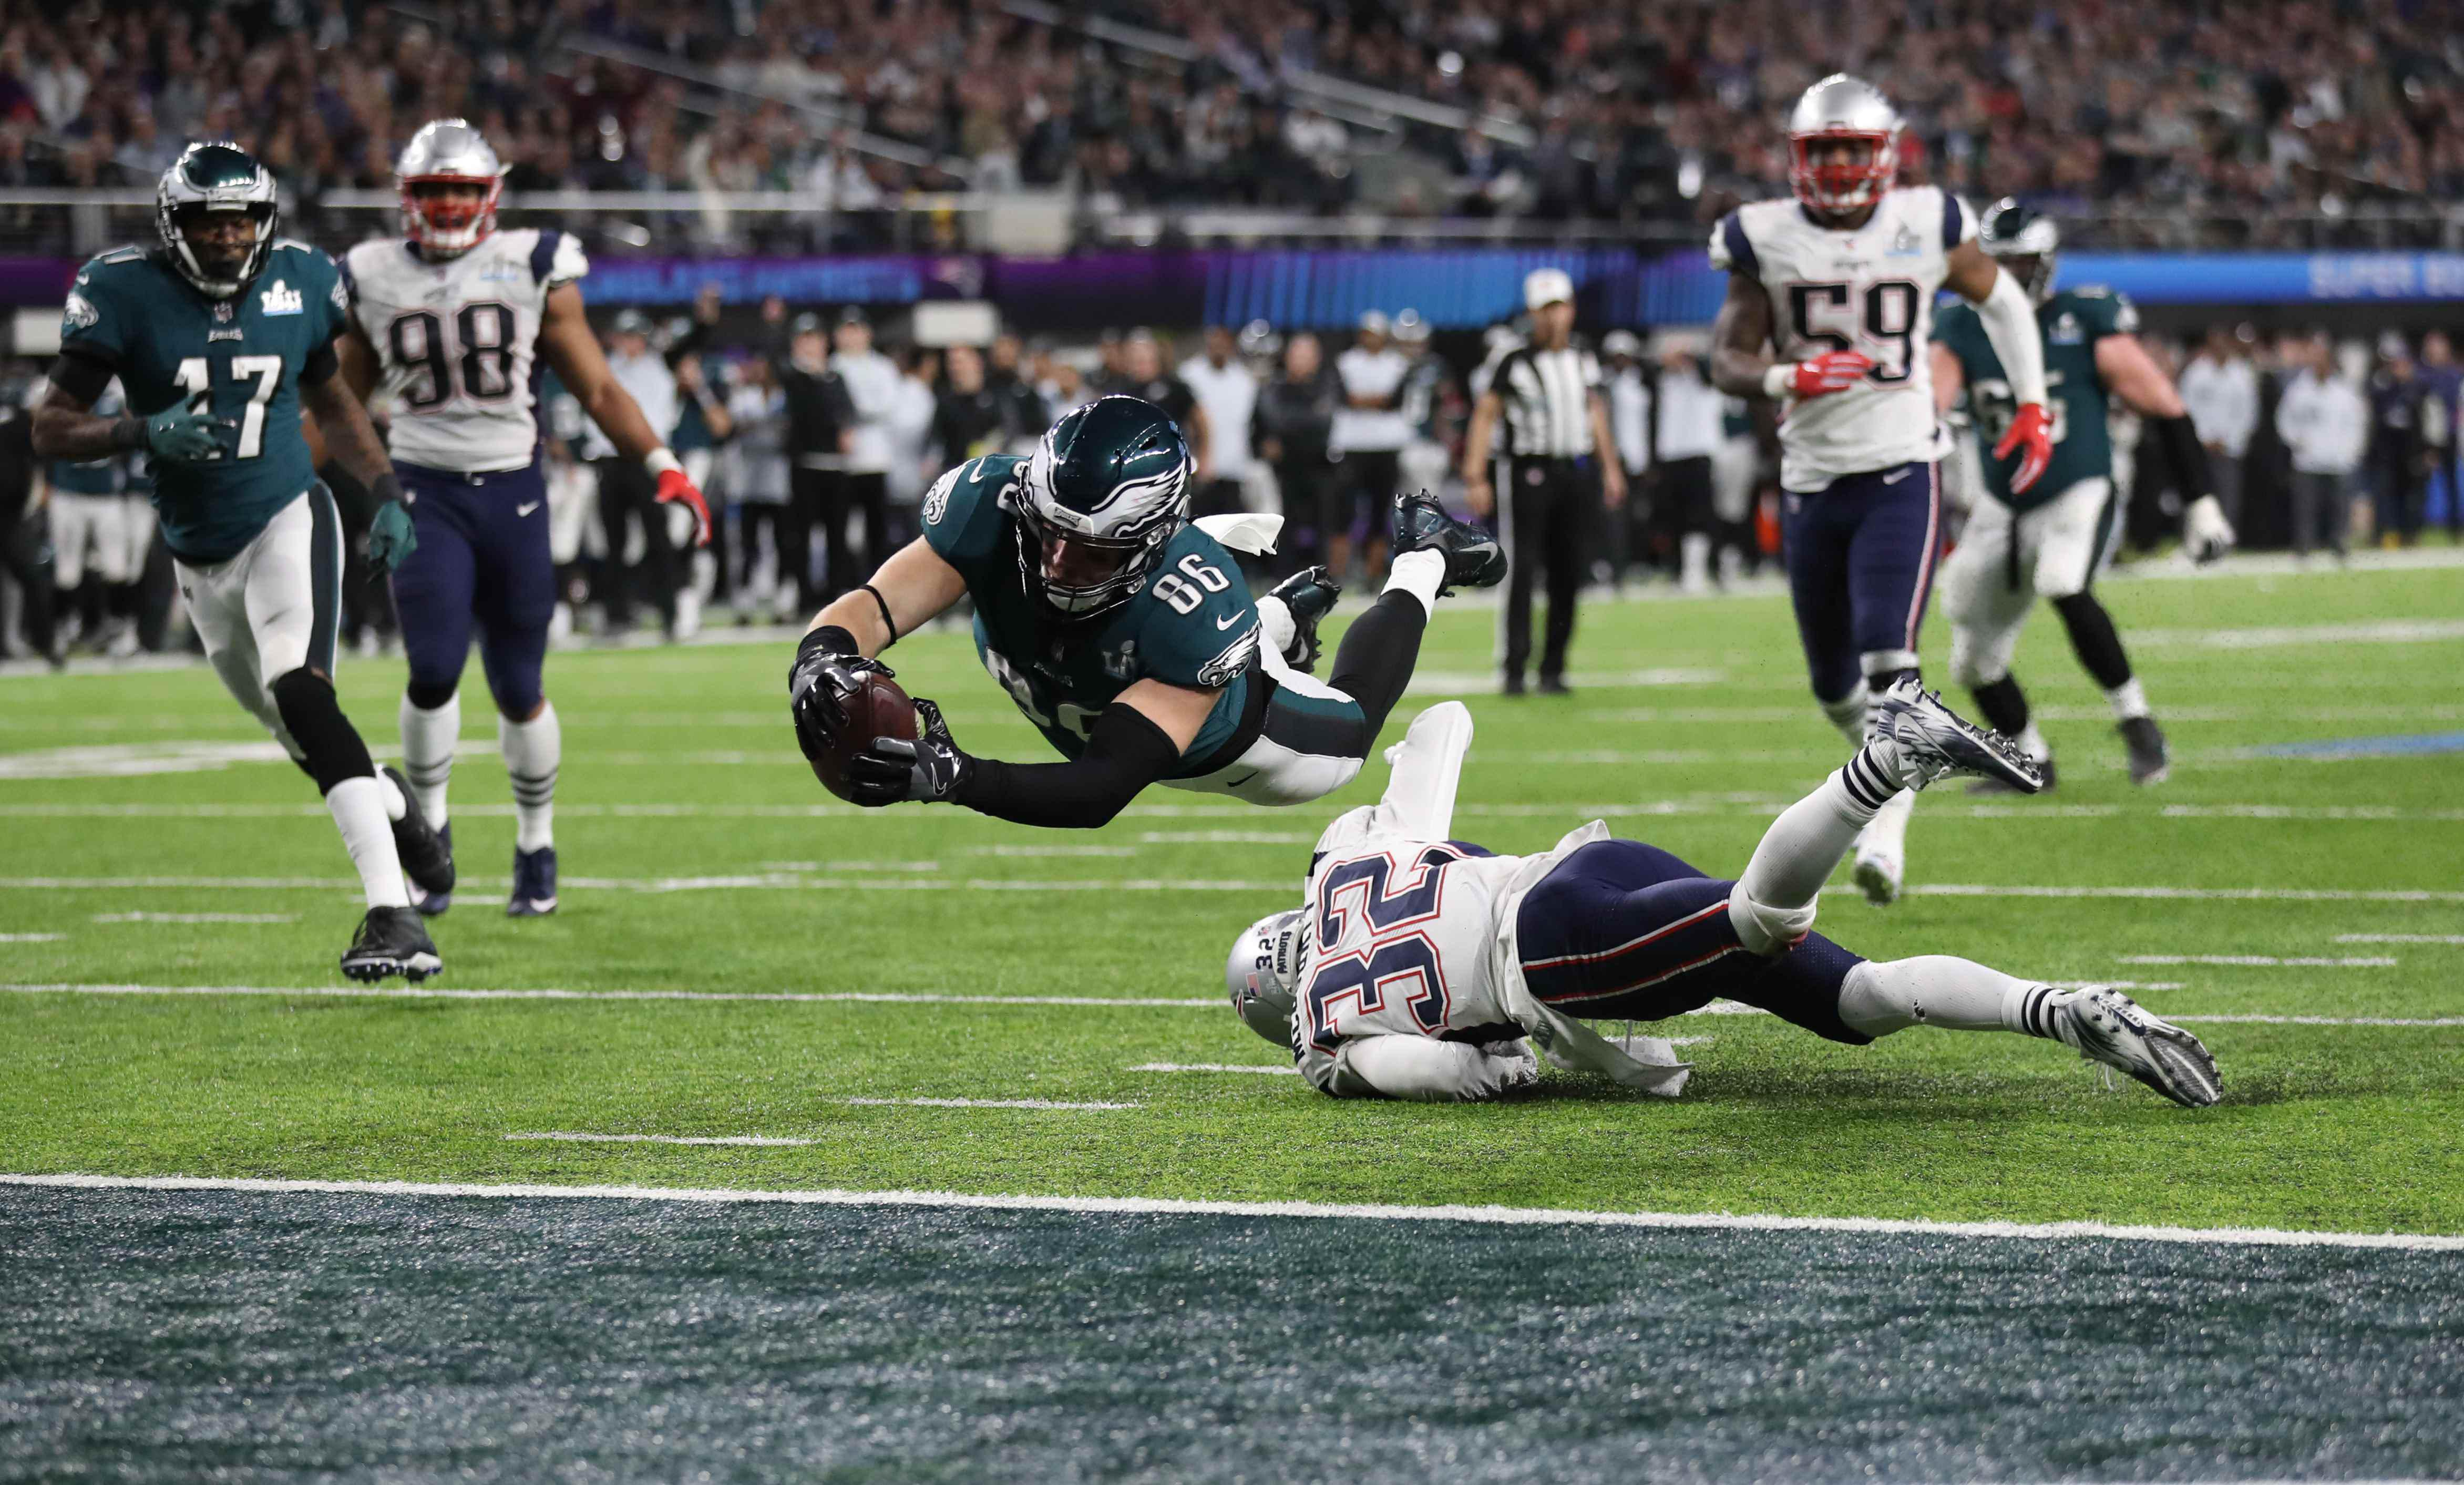 Zach Ertz scored what proved to be the game-winning touchdown